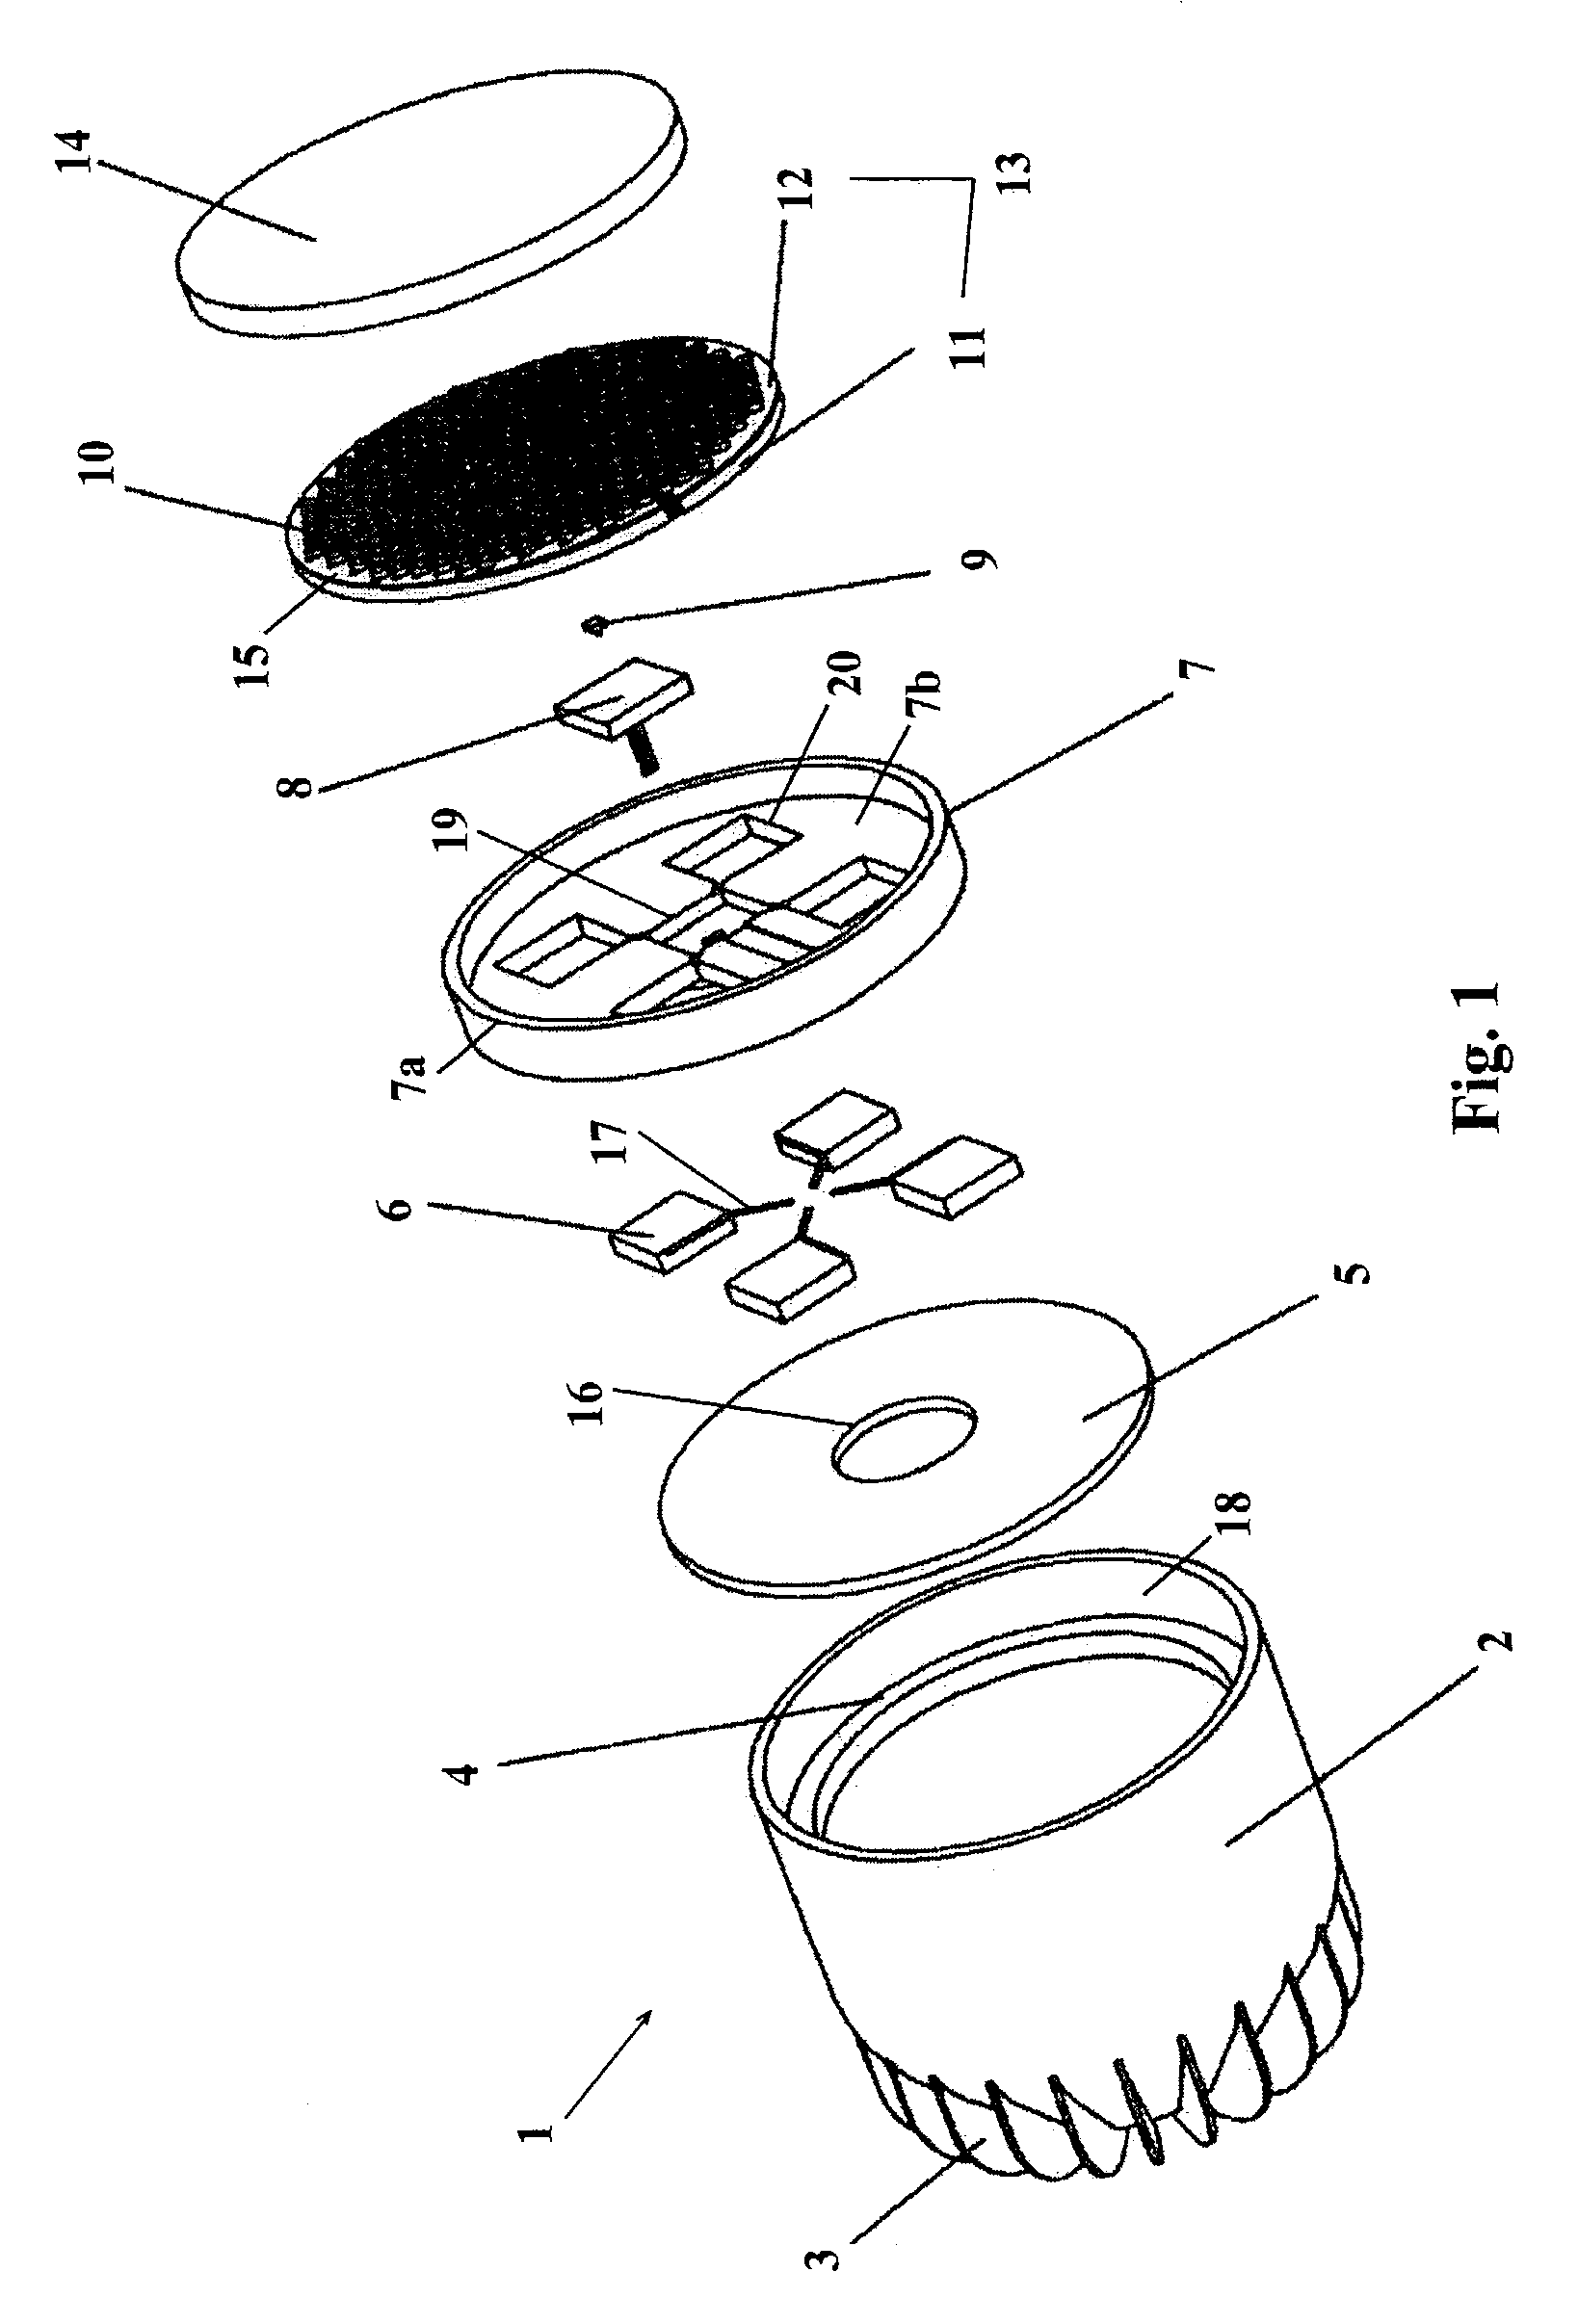 patent us6964501 - peltier-cooled led lighting assembly